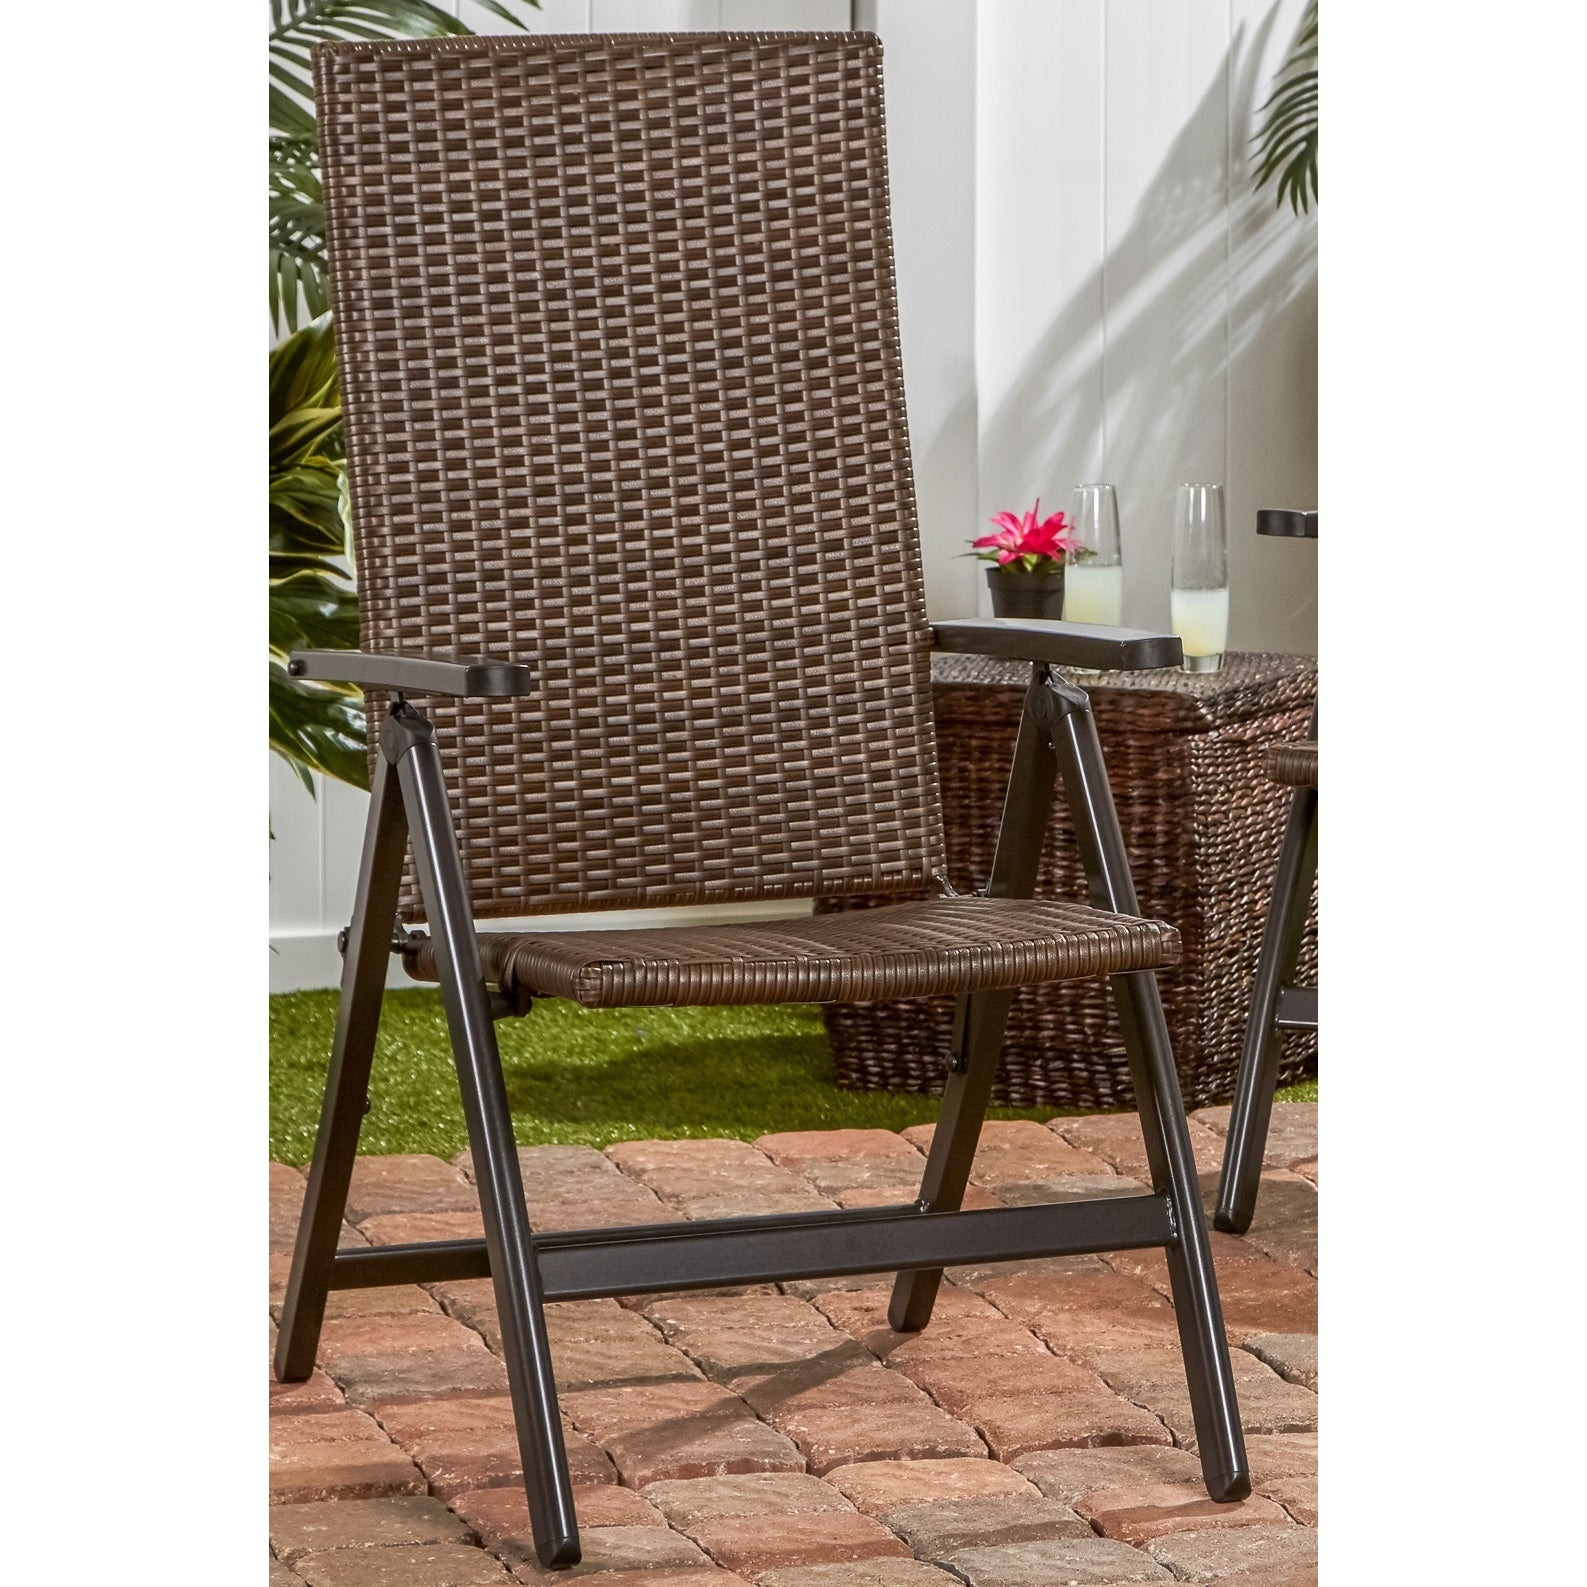 Clay Alder Home Robyville Brown PE Wicker Hand Woven Outdoor Reclining Chair    Free Shipping Today   Overstock   19427724